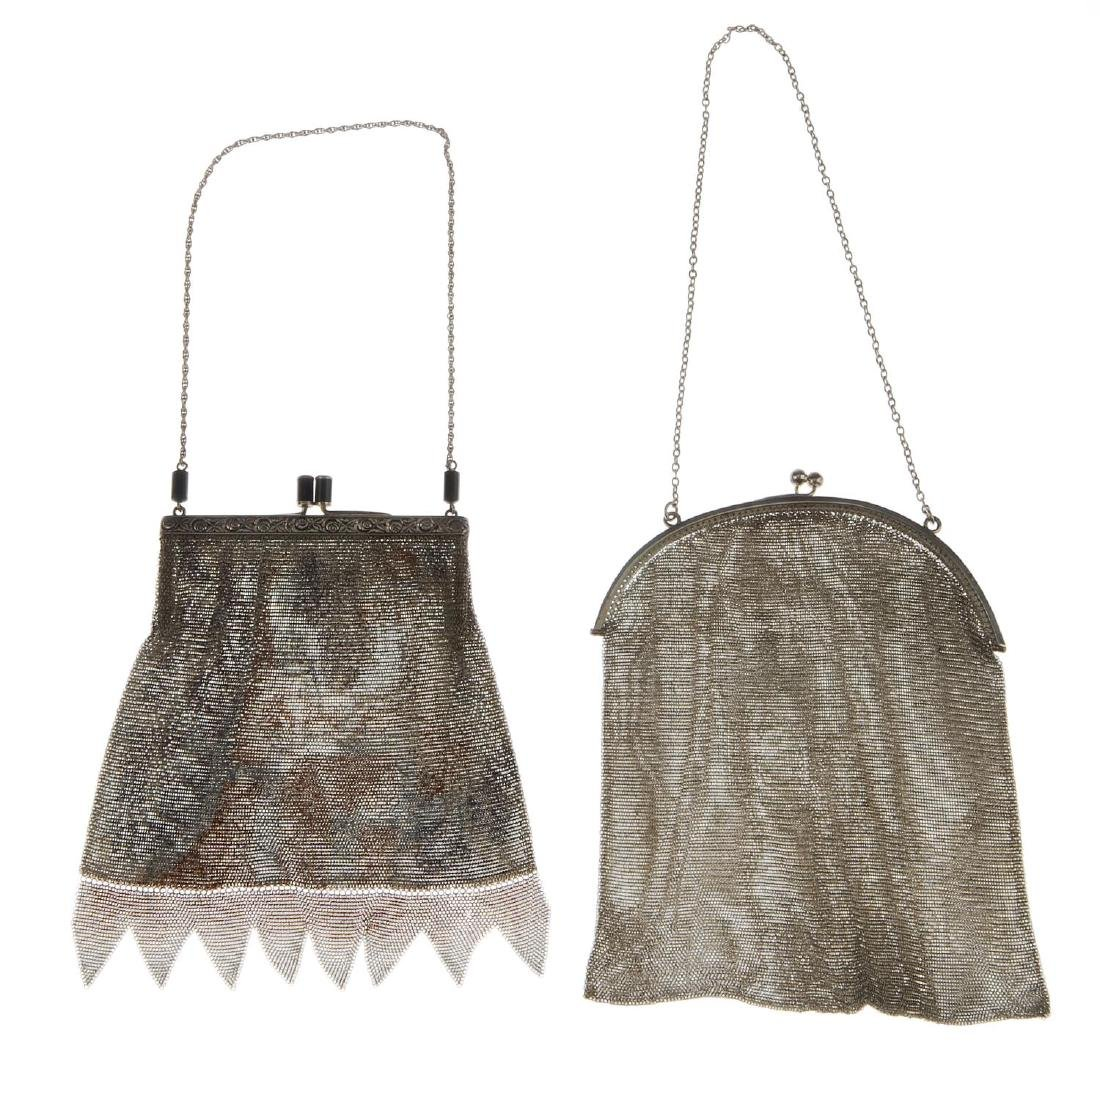 Two early 20th century mesh bags. The first with a